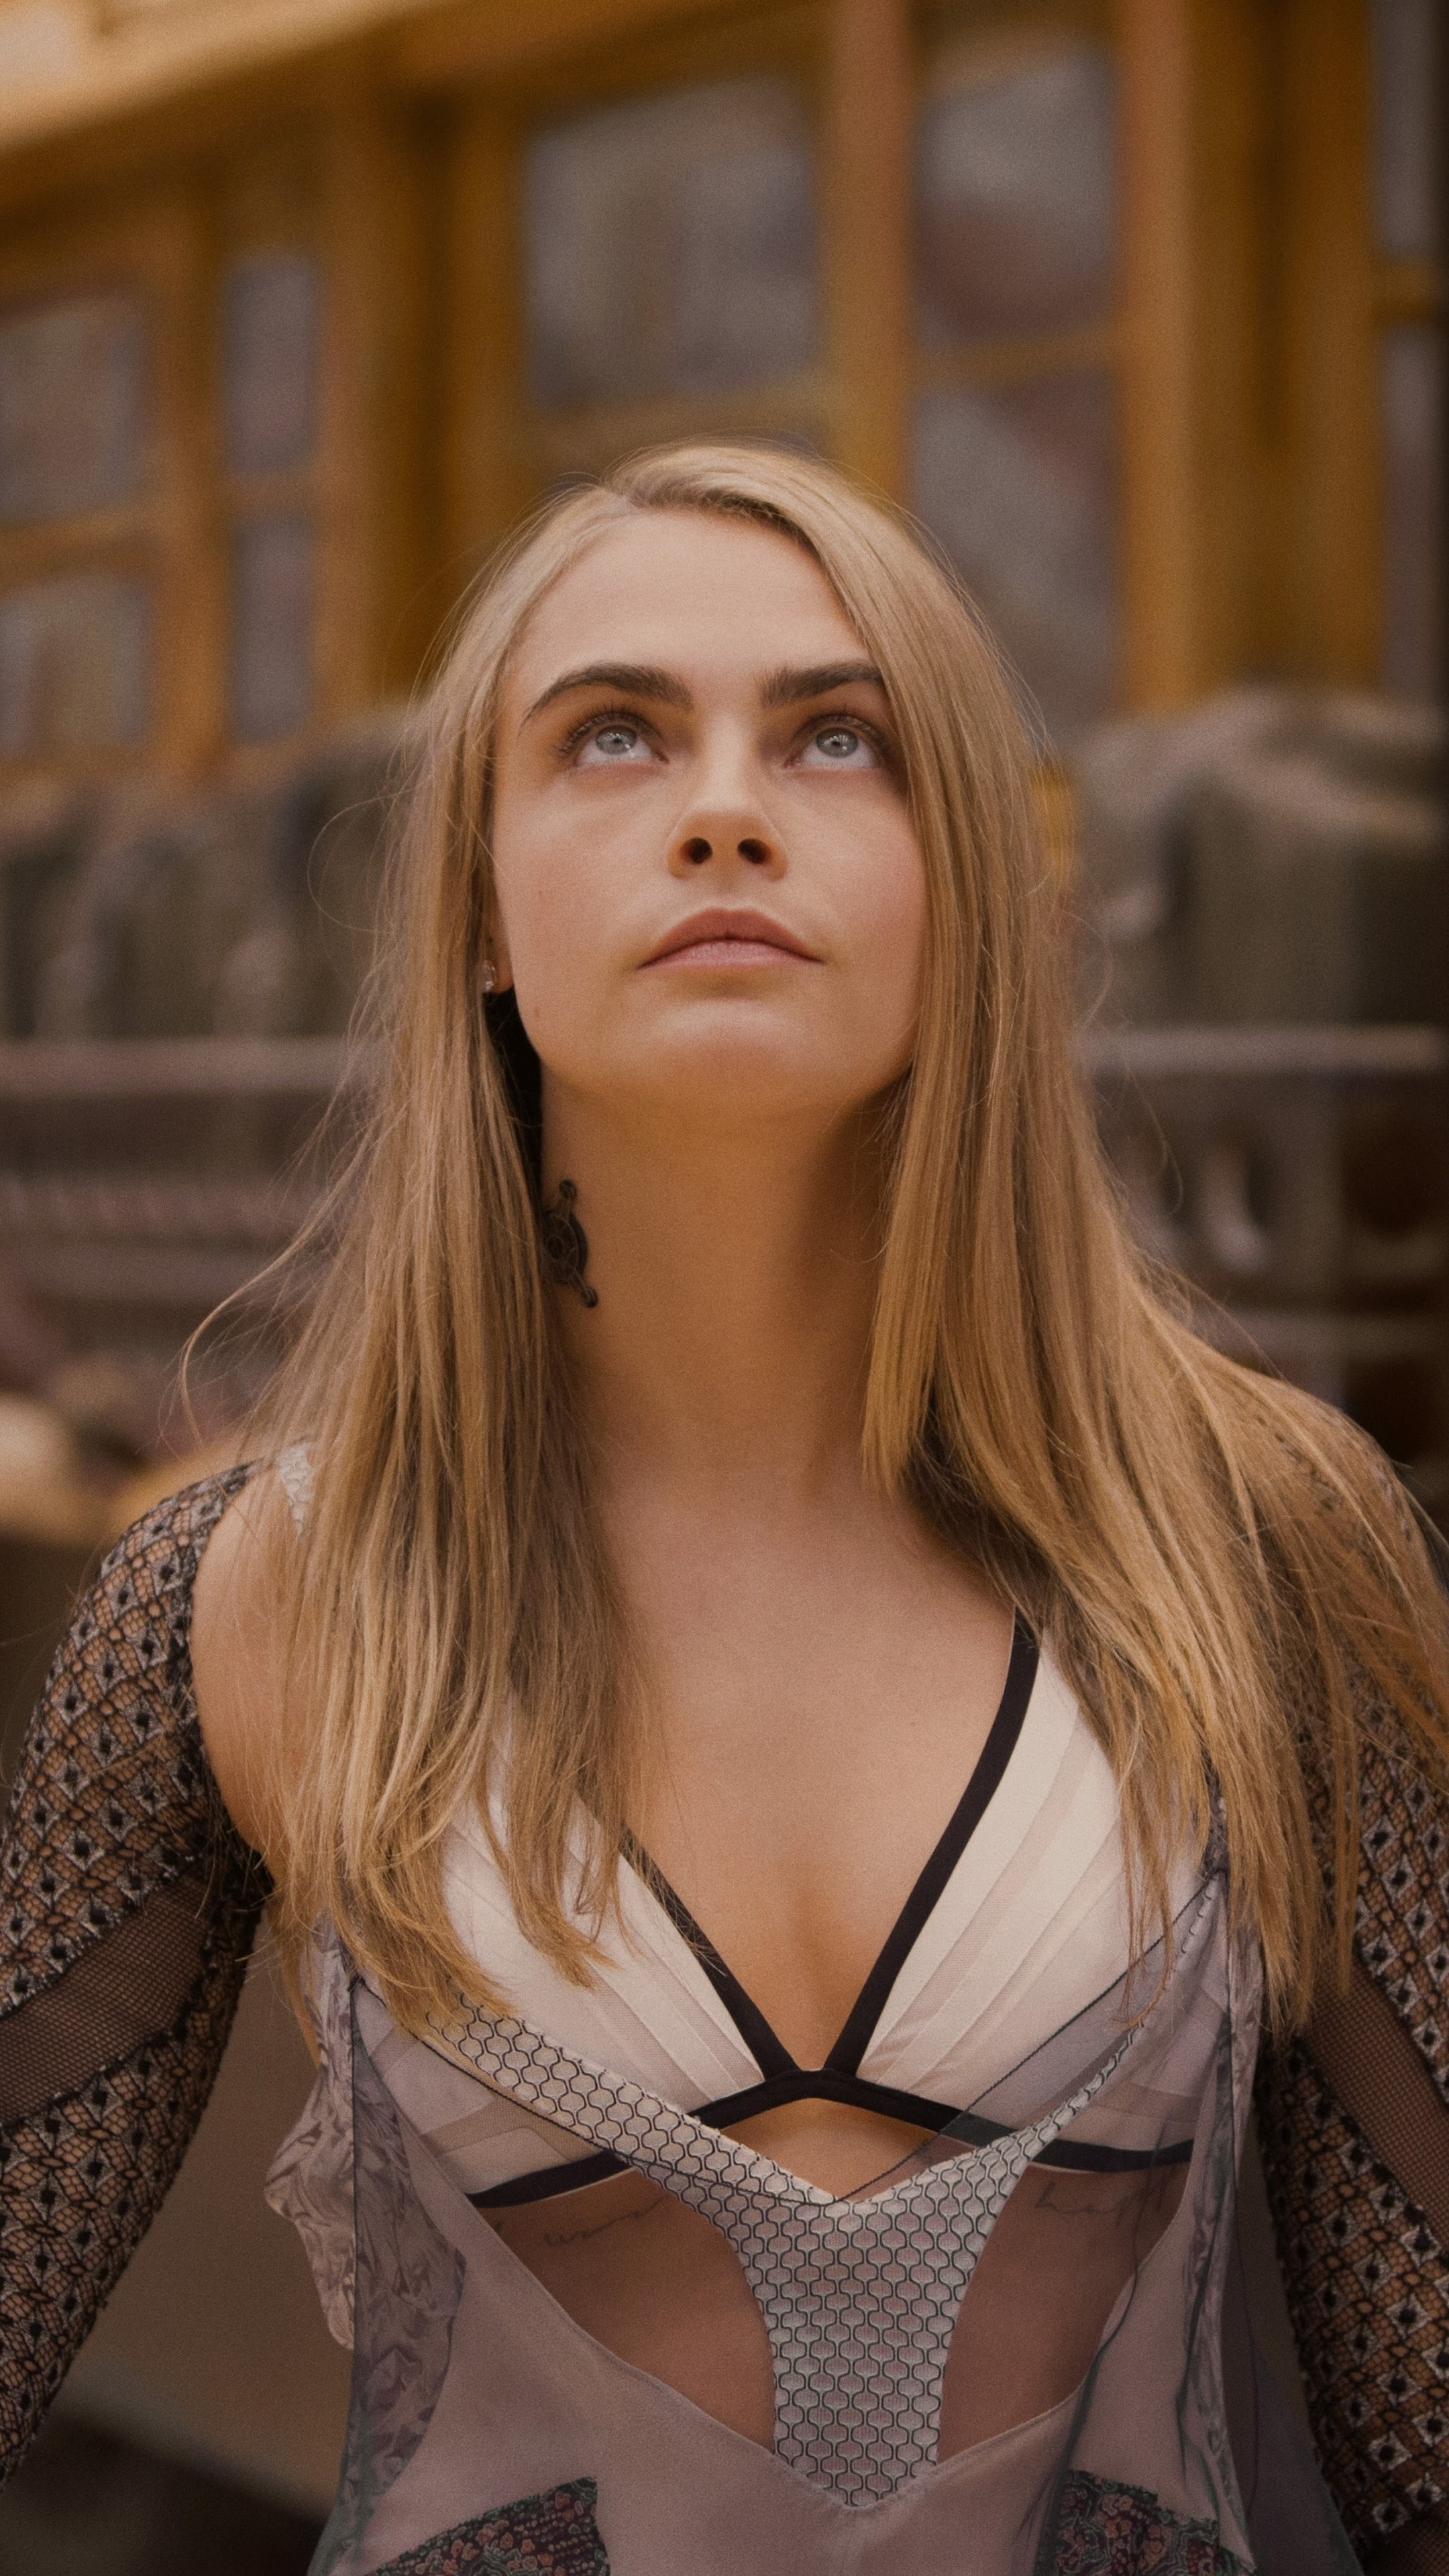 cara-delevingne-as-laureline-in-valerian-and-the-city-of-a-thousand-planets-4k-5k-nc.jpg